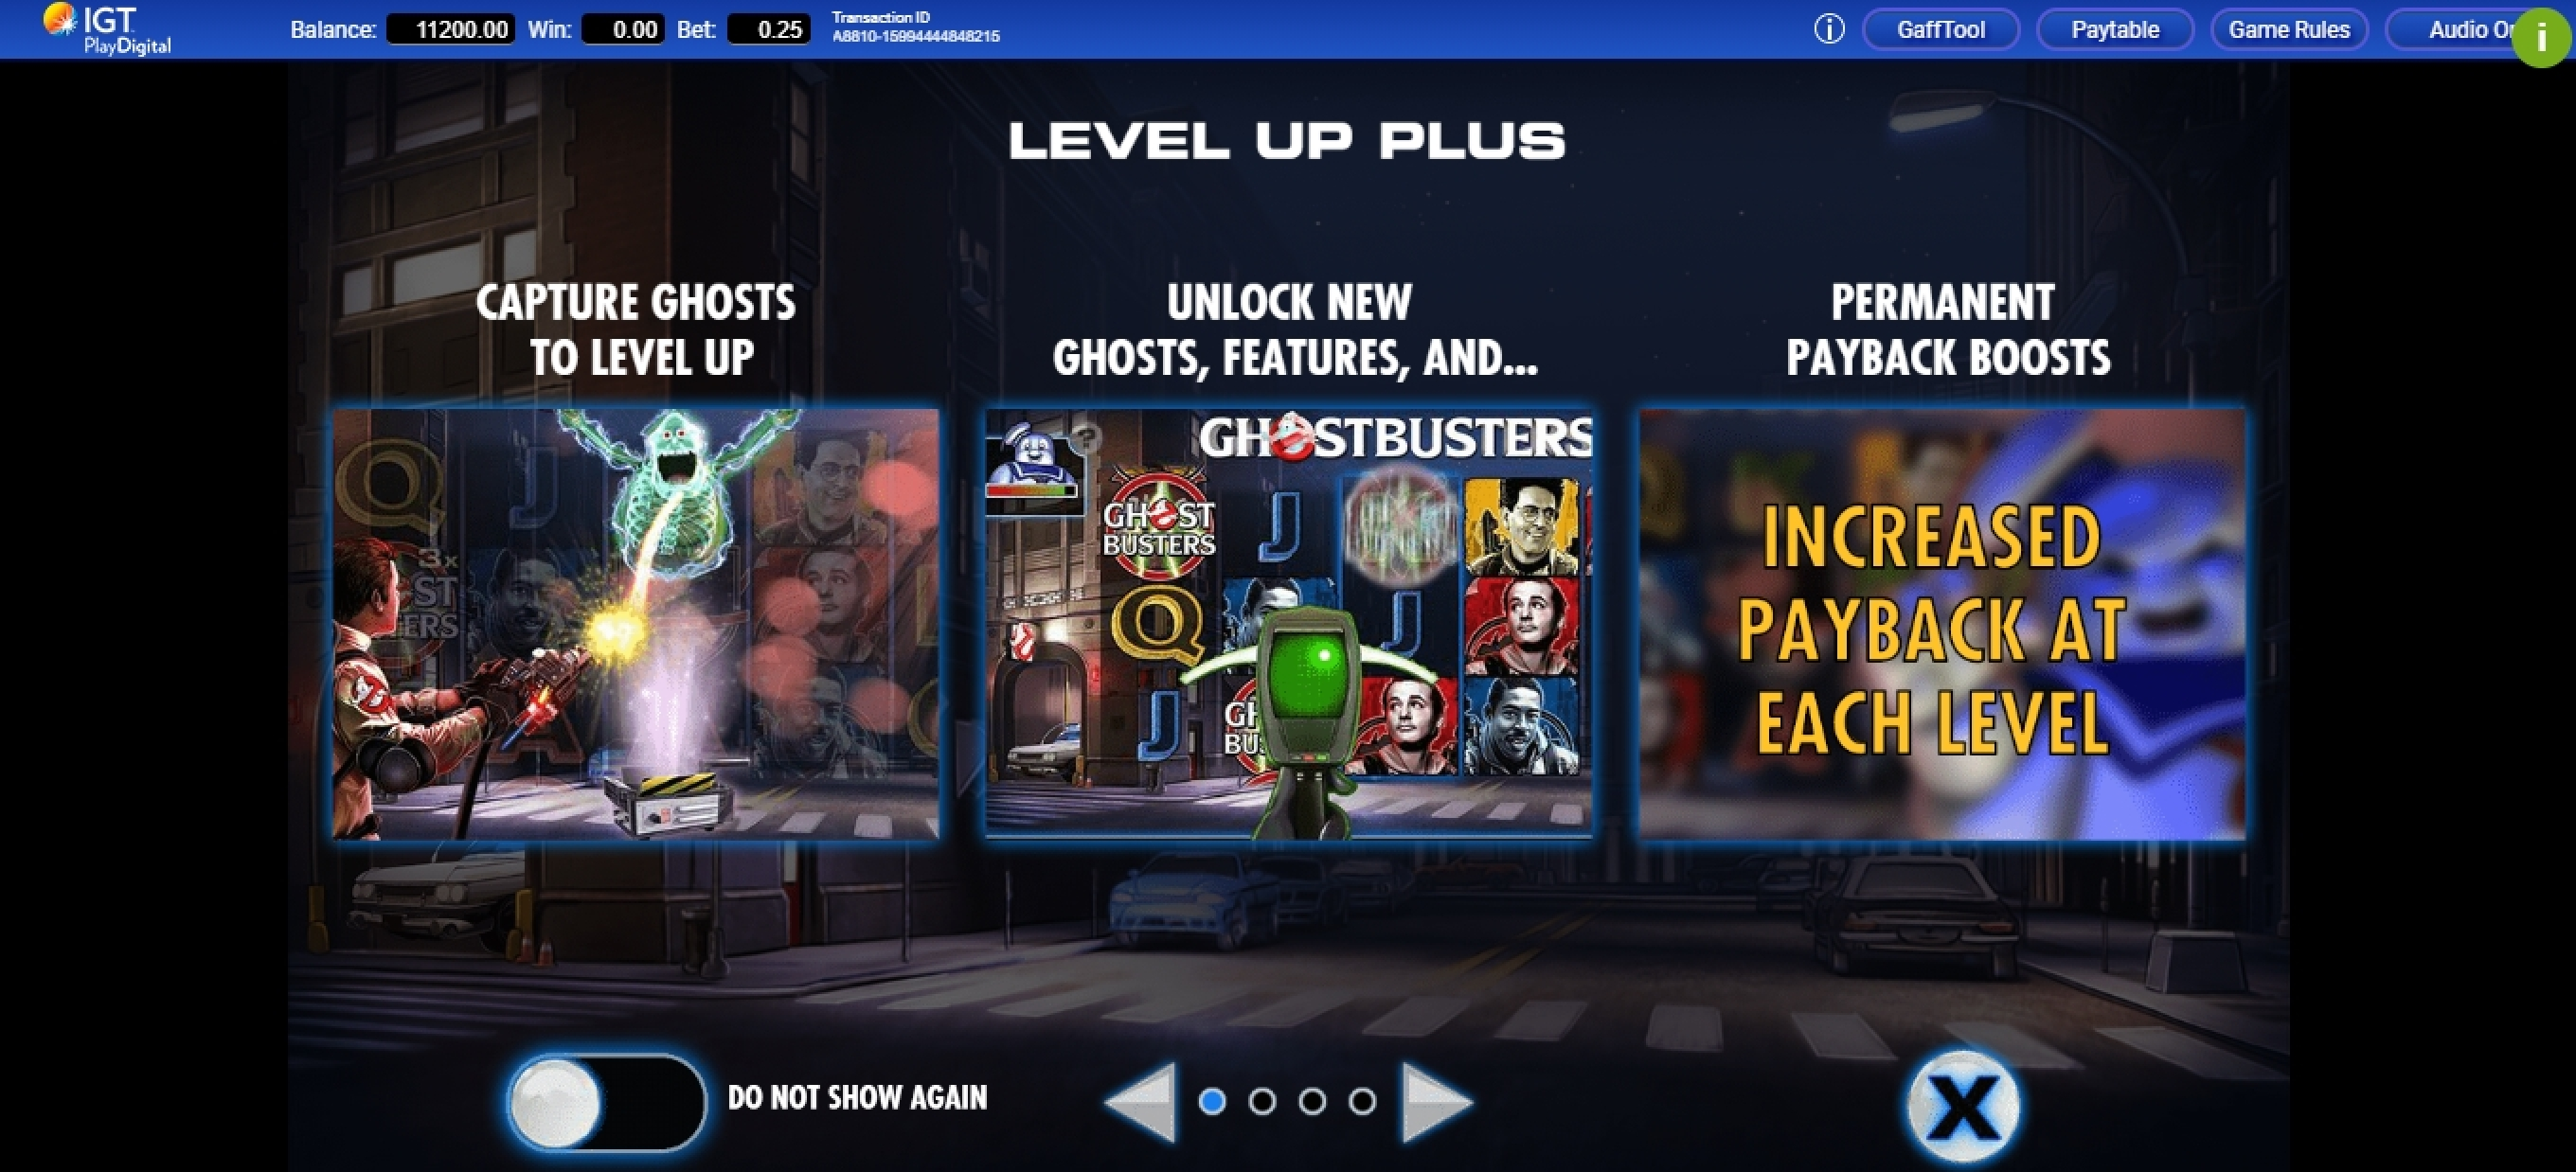 Play Ghostbusters Plus Free Casino Slot Game by IGT